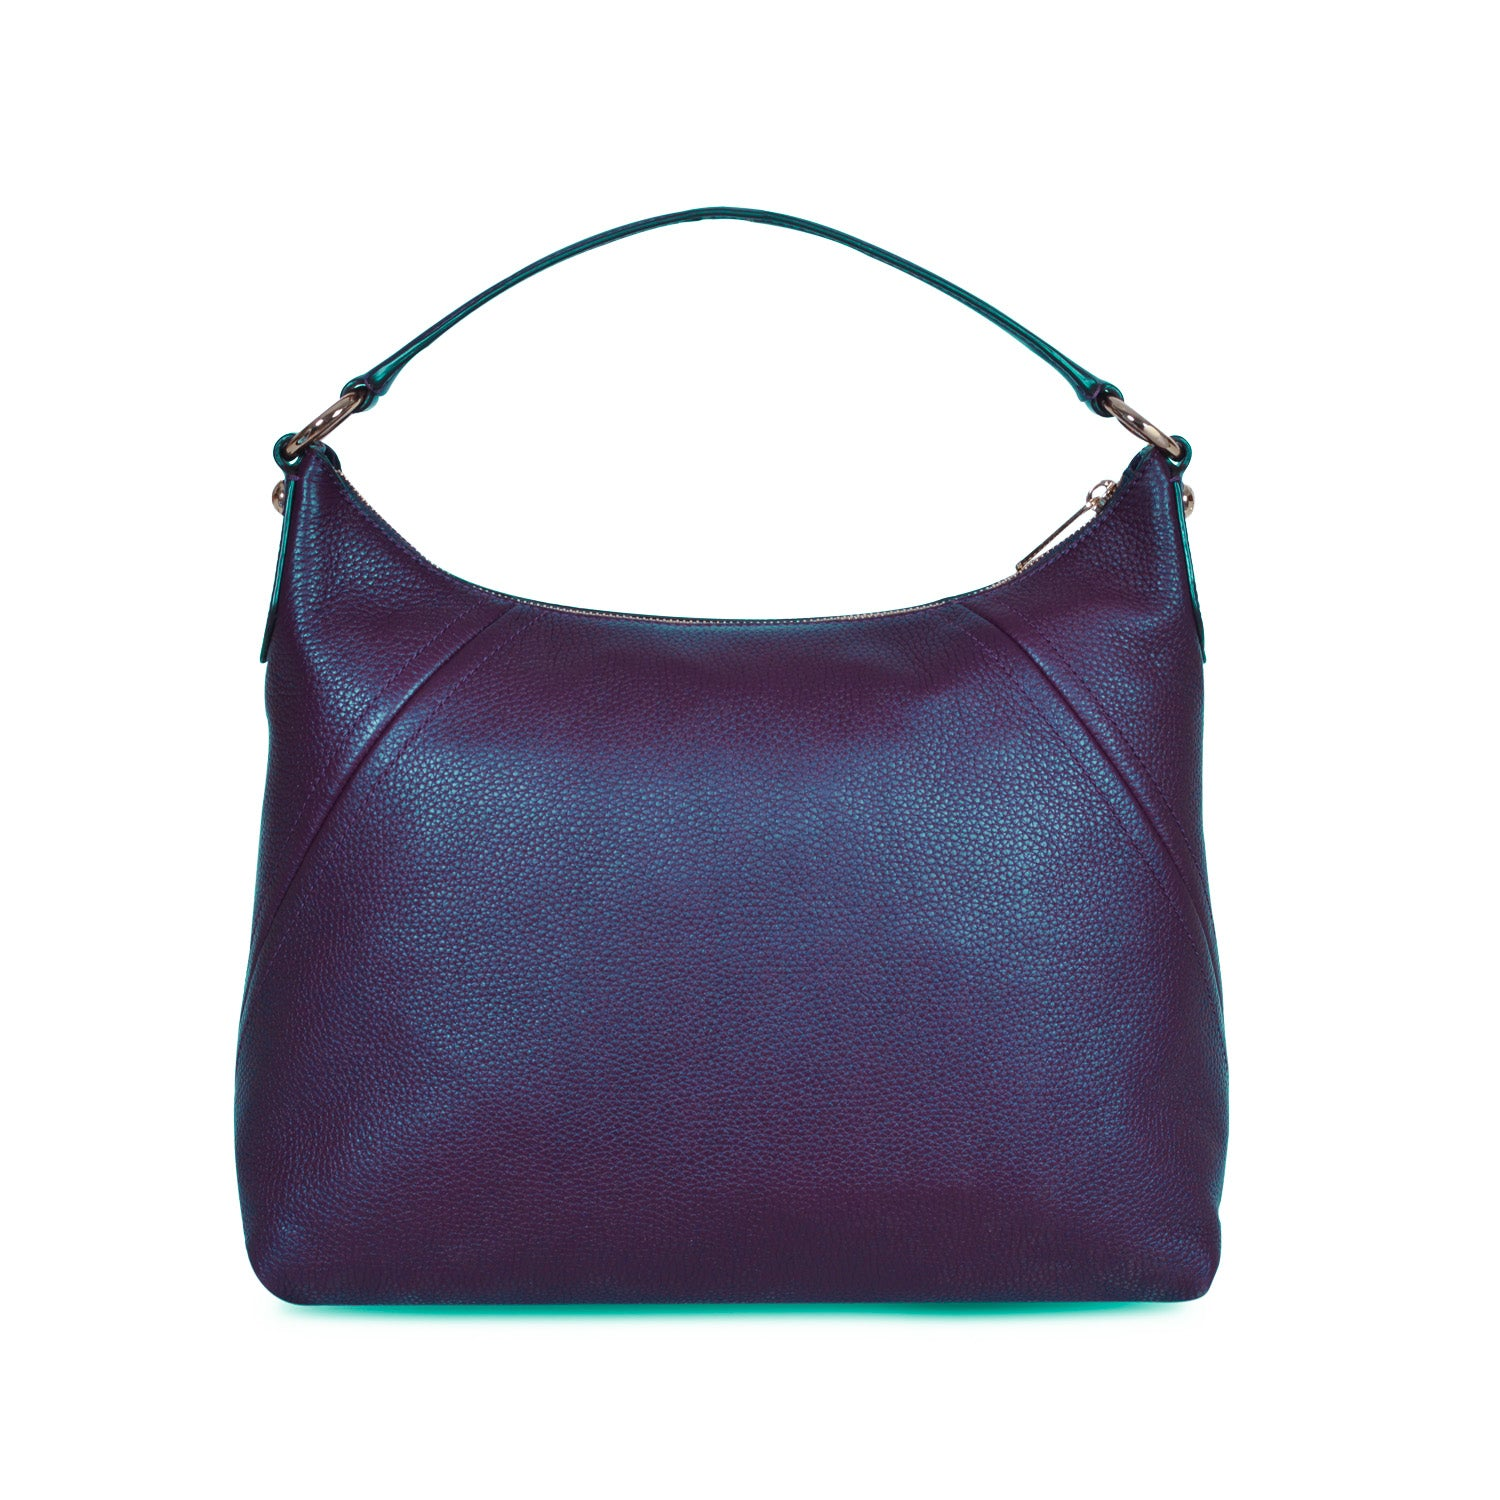 MICHAEL KORS ARIA NAVY LEATHER SHOULDER BAG